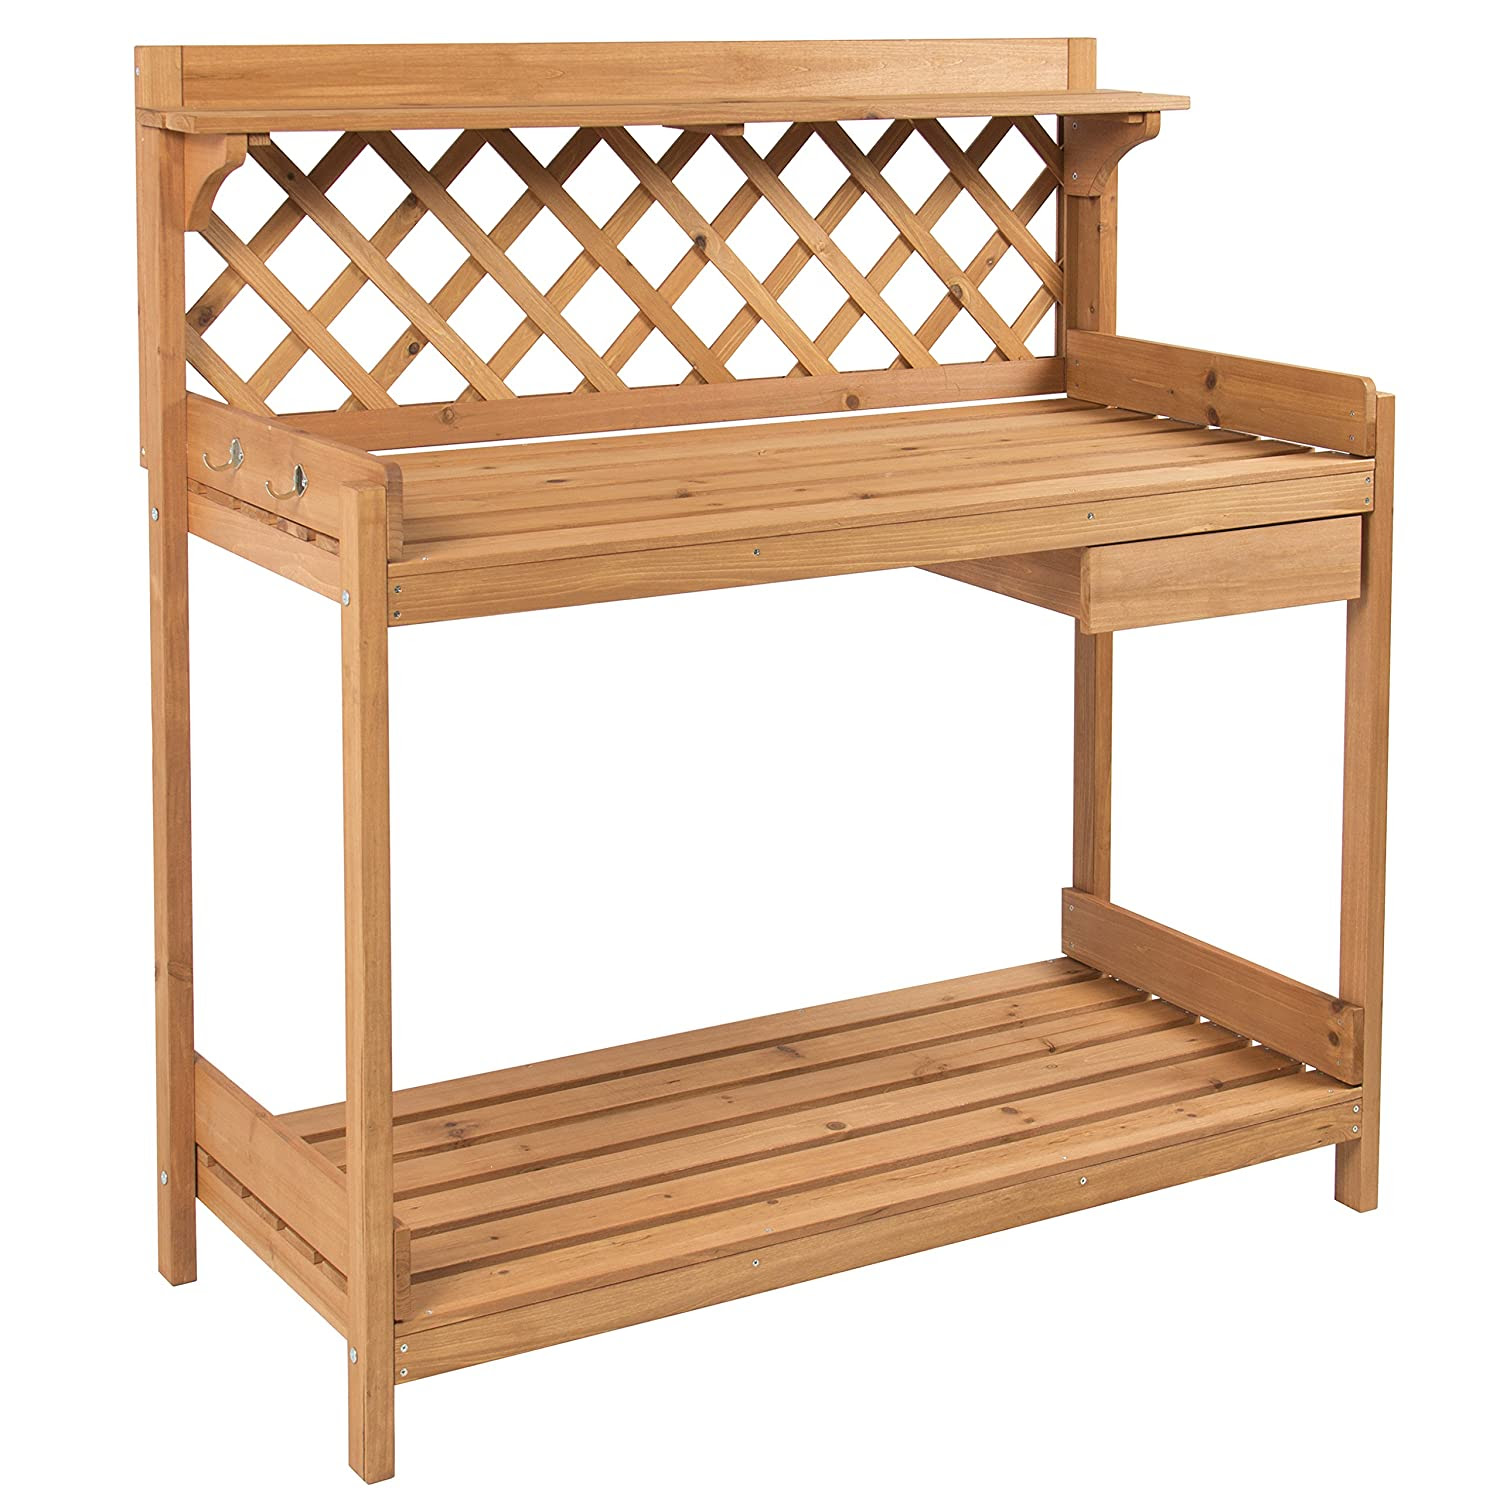 Fabulous Potting Bench Outdoor Bar Buy Or Build Brooklyn Limestone Squirreltailoven Fun Painted Chair Ideas Images Squirreltailovenorg